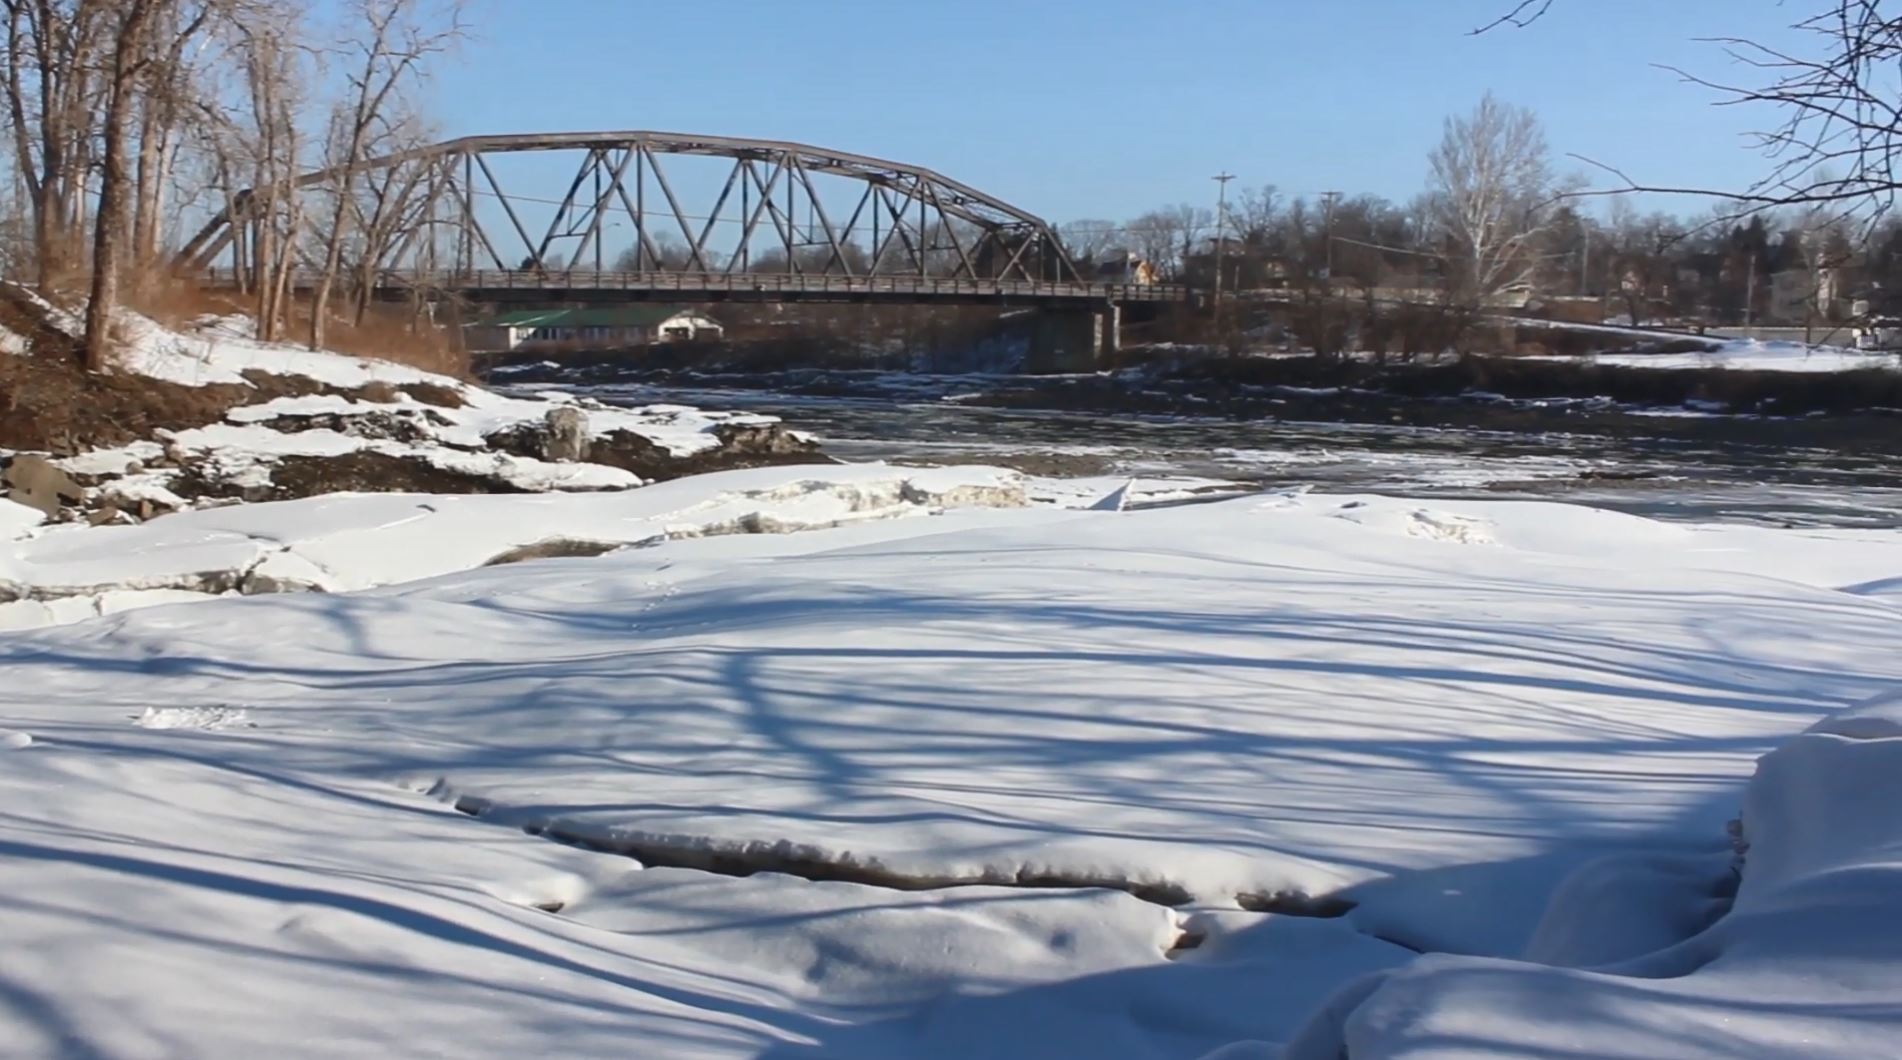 A snow-covered river with bare trees on the banks and a metal bridge in the background.